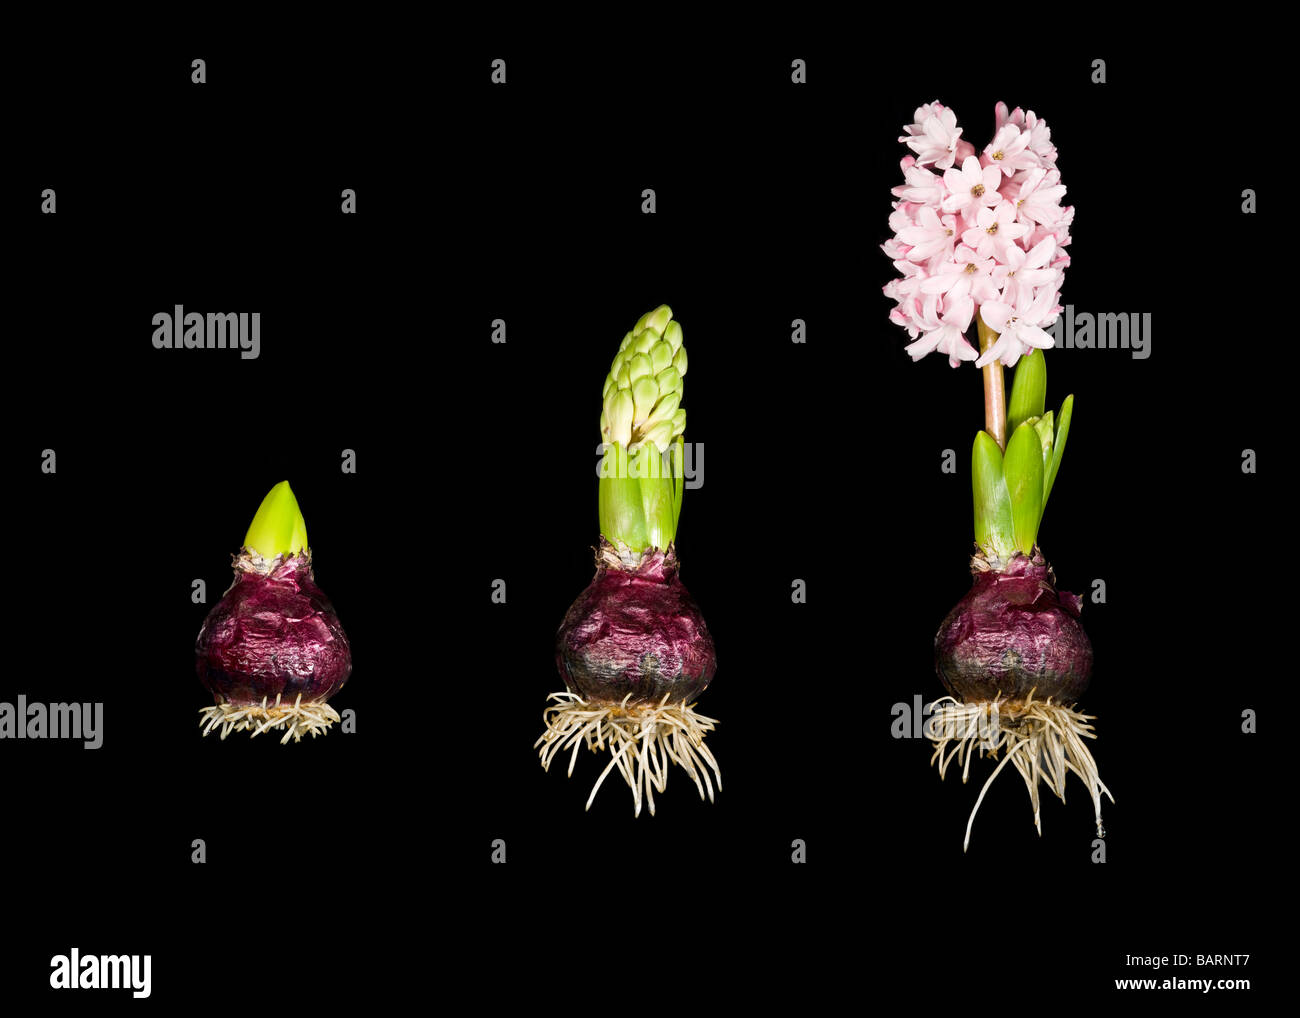 A  3 picture stitch sequence showing the roots and growth in 3 stages of a Hyacinth plant bulb (Hyacinthus orientalis). - Stock Image